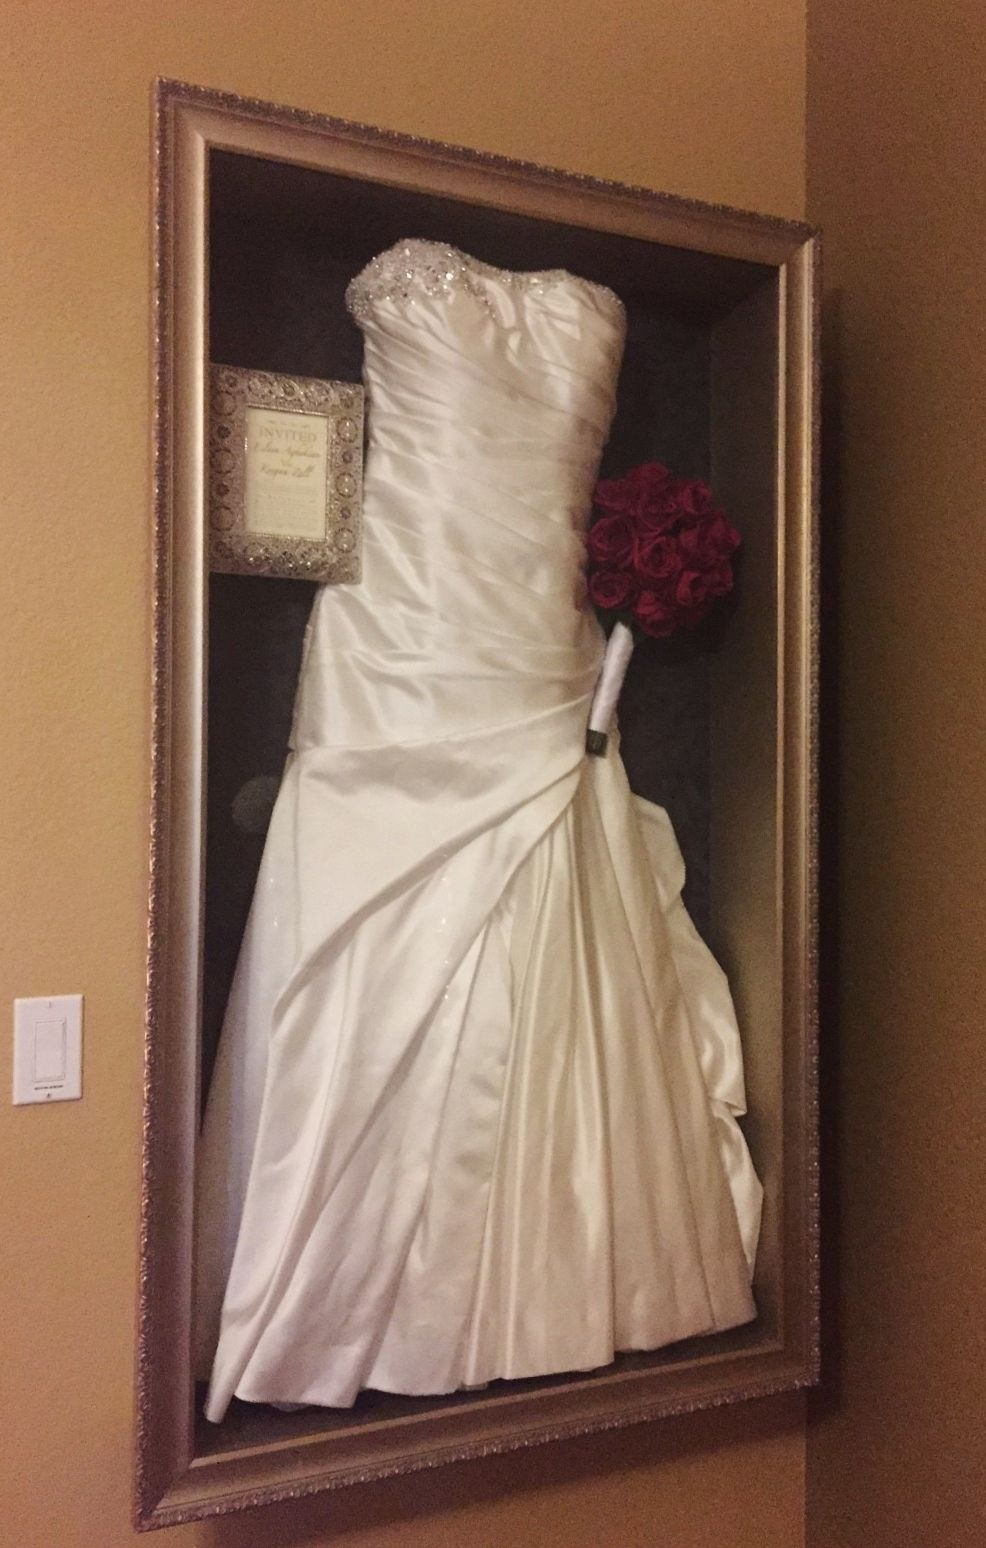 Framed Wedding Dress With Invitation And Bouquet Recessed Into The Wall Framed By Floral Wedding Dress Frame Wedding Dress Display Wedding Dress Shadow Box